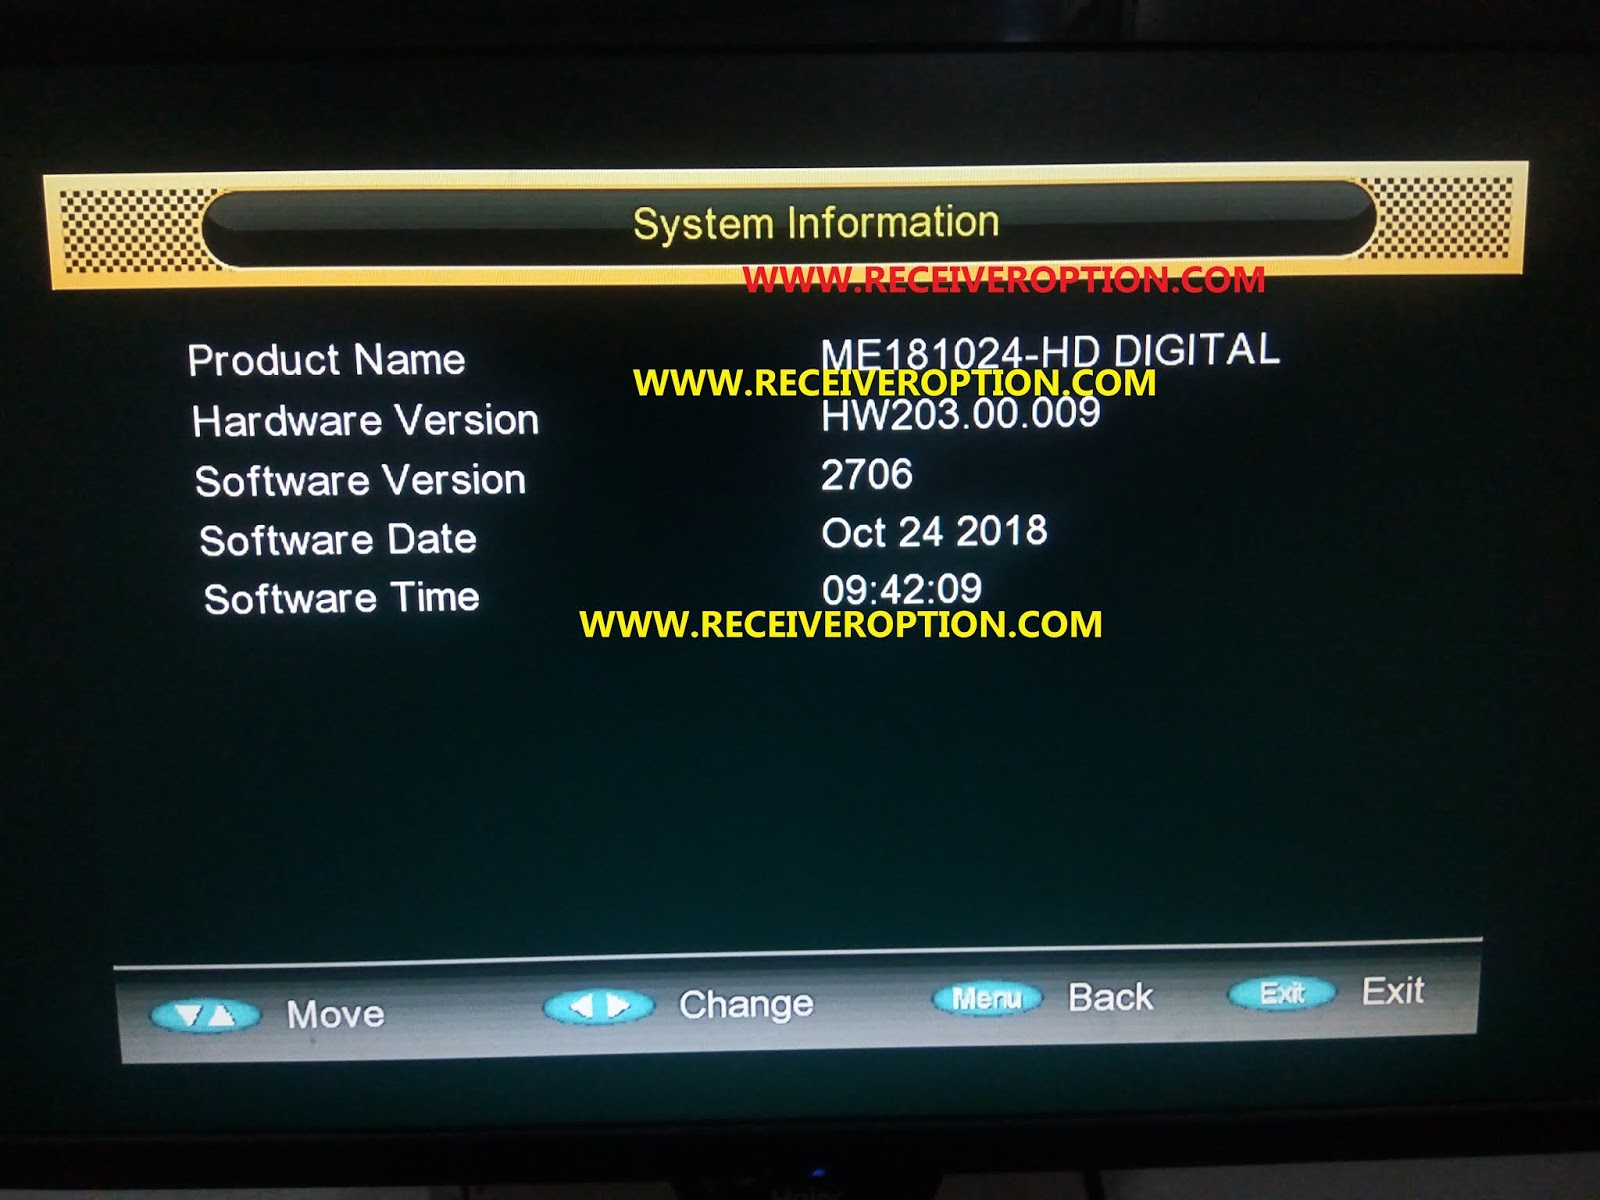 GX6605S BOARD HW203 00 009 POWERVU KEY NEW SOFTWARE - HOW TO